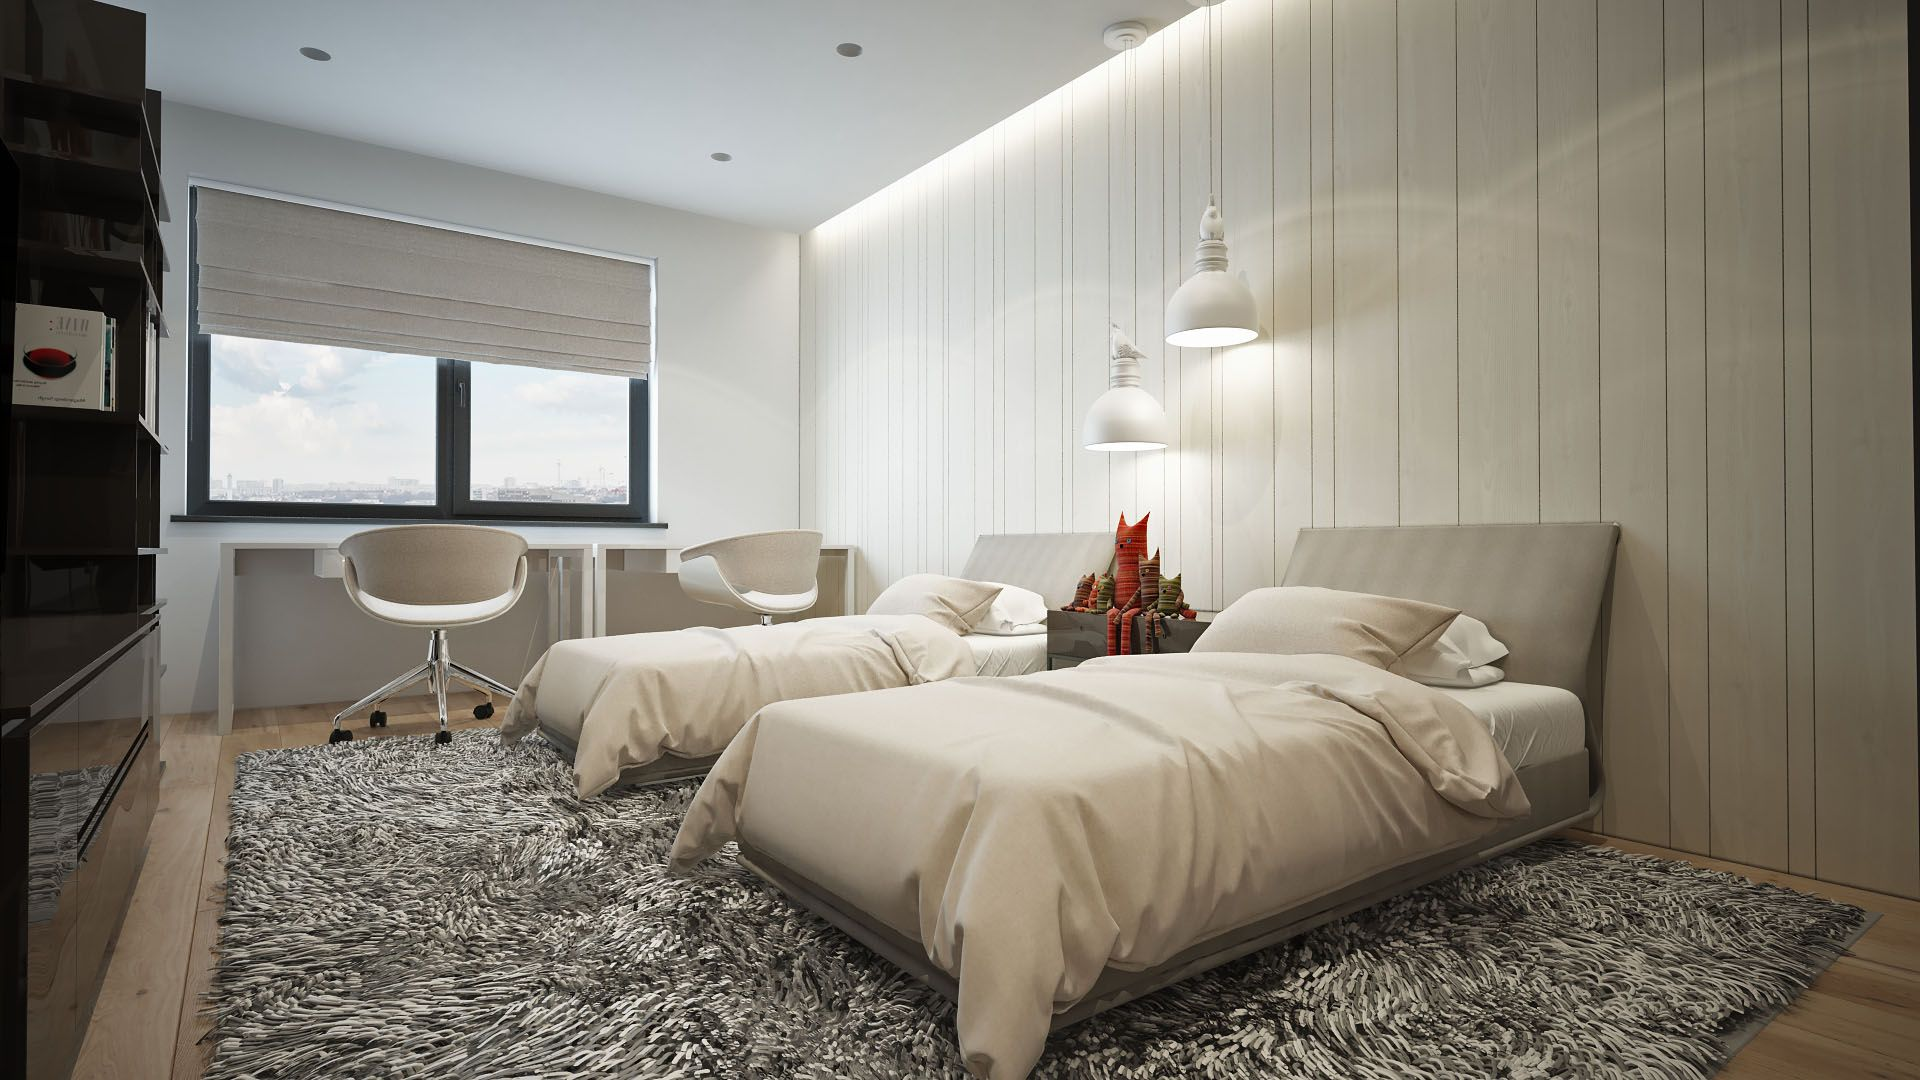 Guest Room Ideas Pictures: Creative-guest-room-design